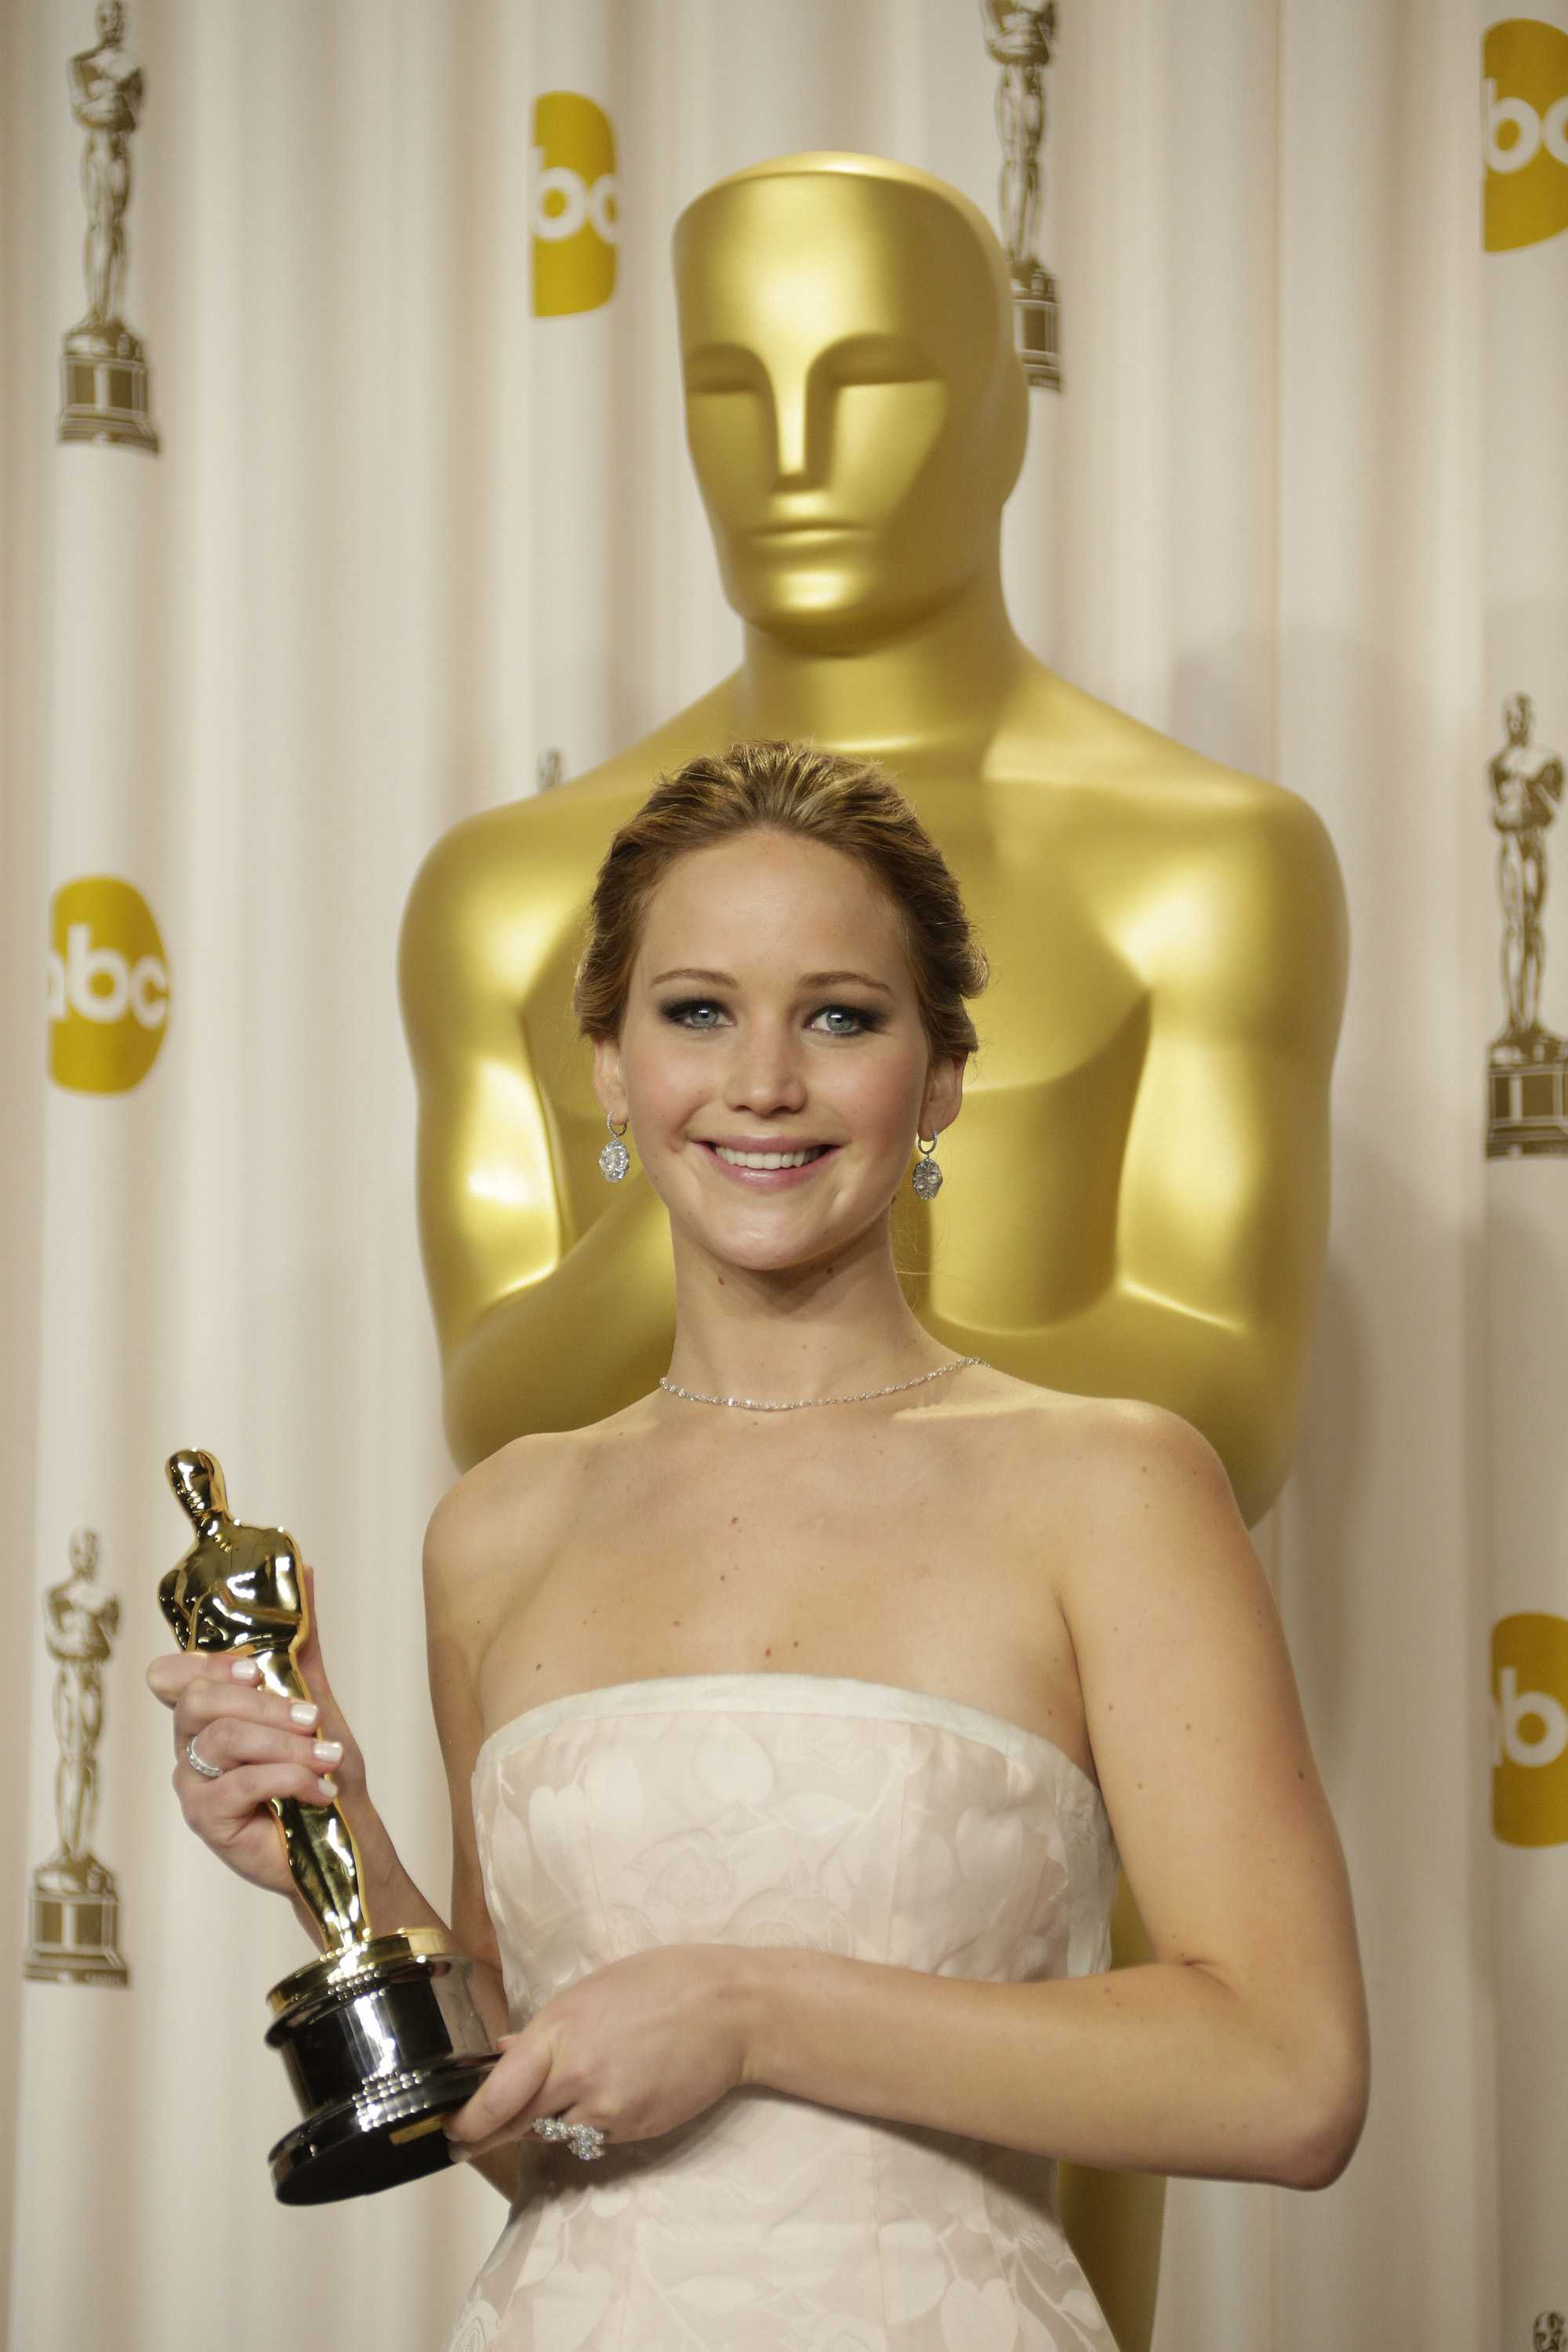 Jennifer Lawrence poses backstage at the 85th annual Academy Awards. The actress said she refuses to go on a diet for any film roles.